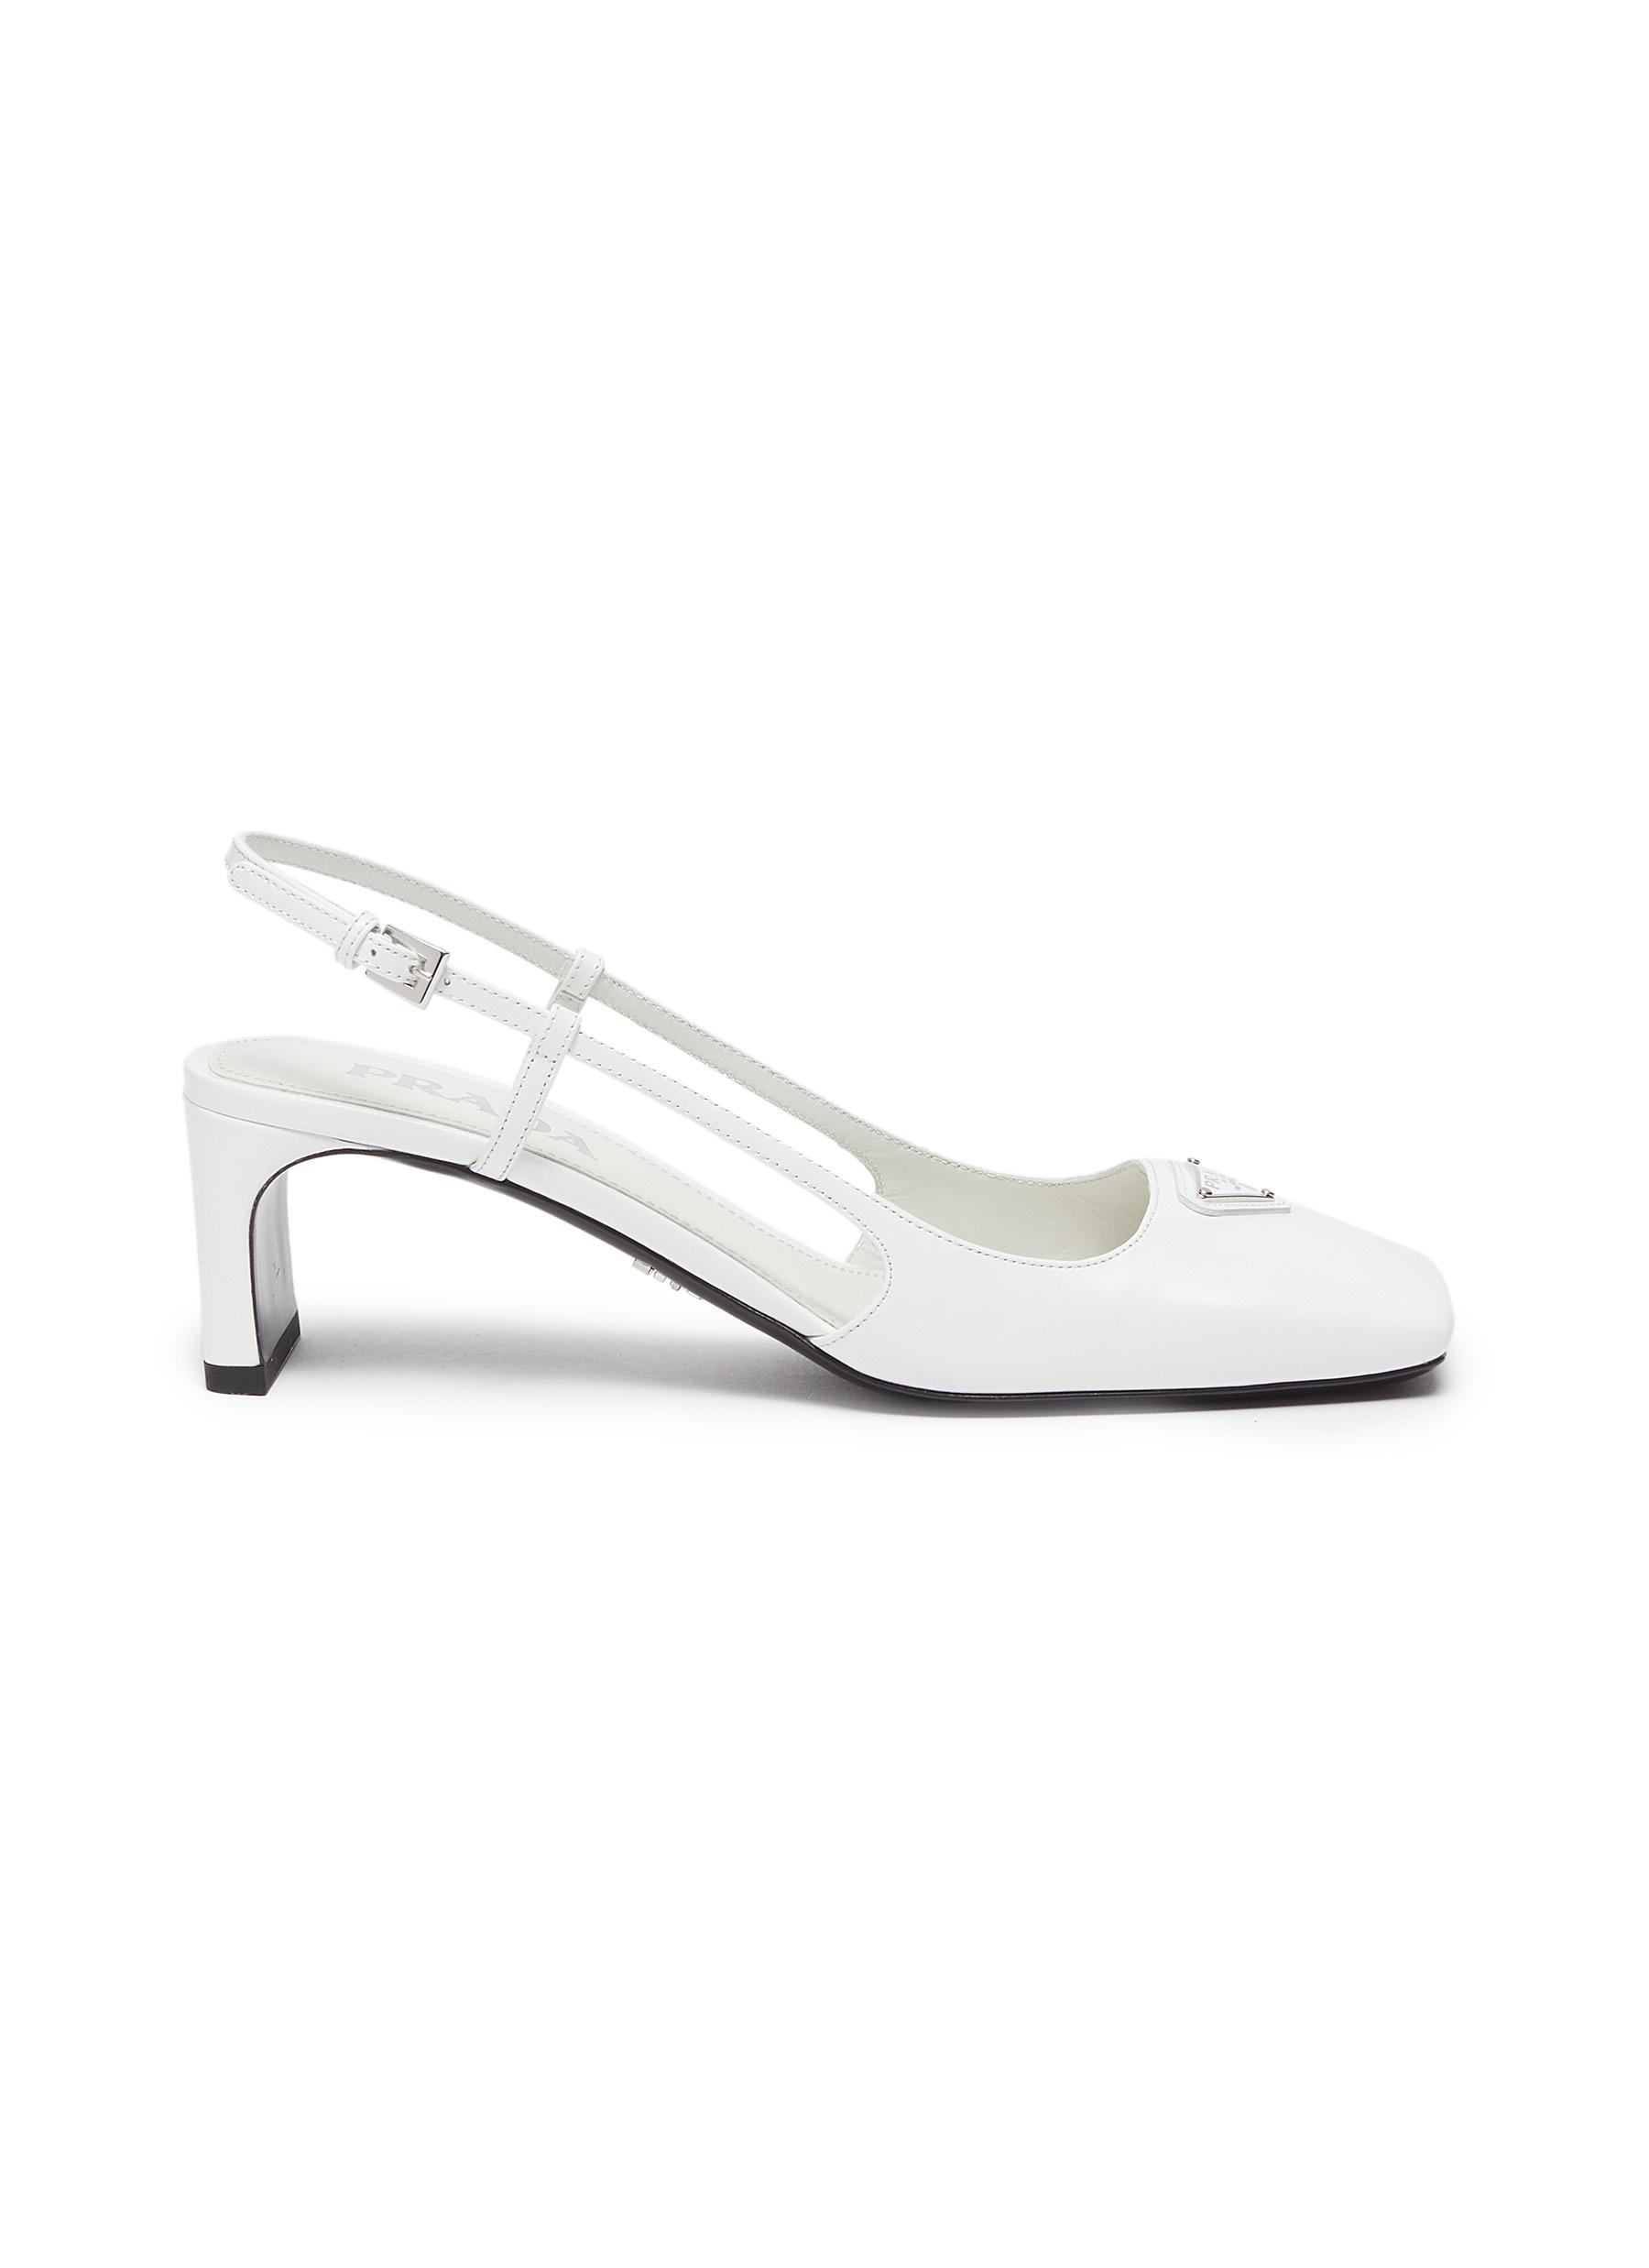 Prada Square toe logo patch leather slingback pumps